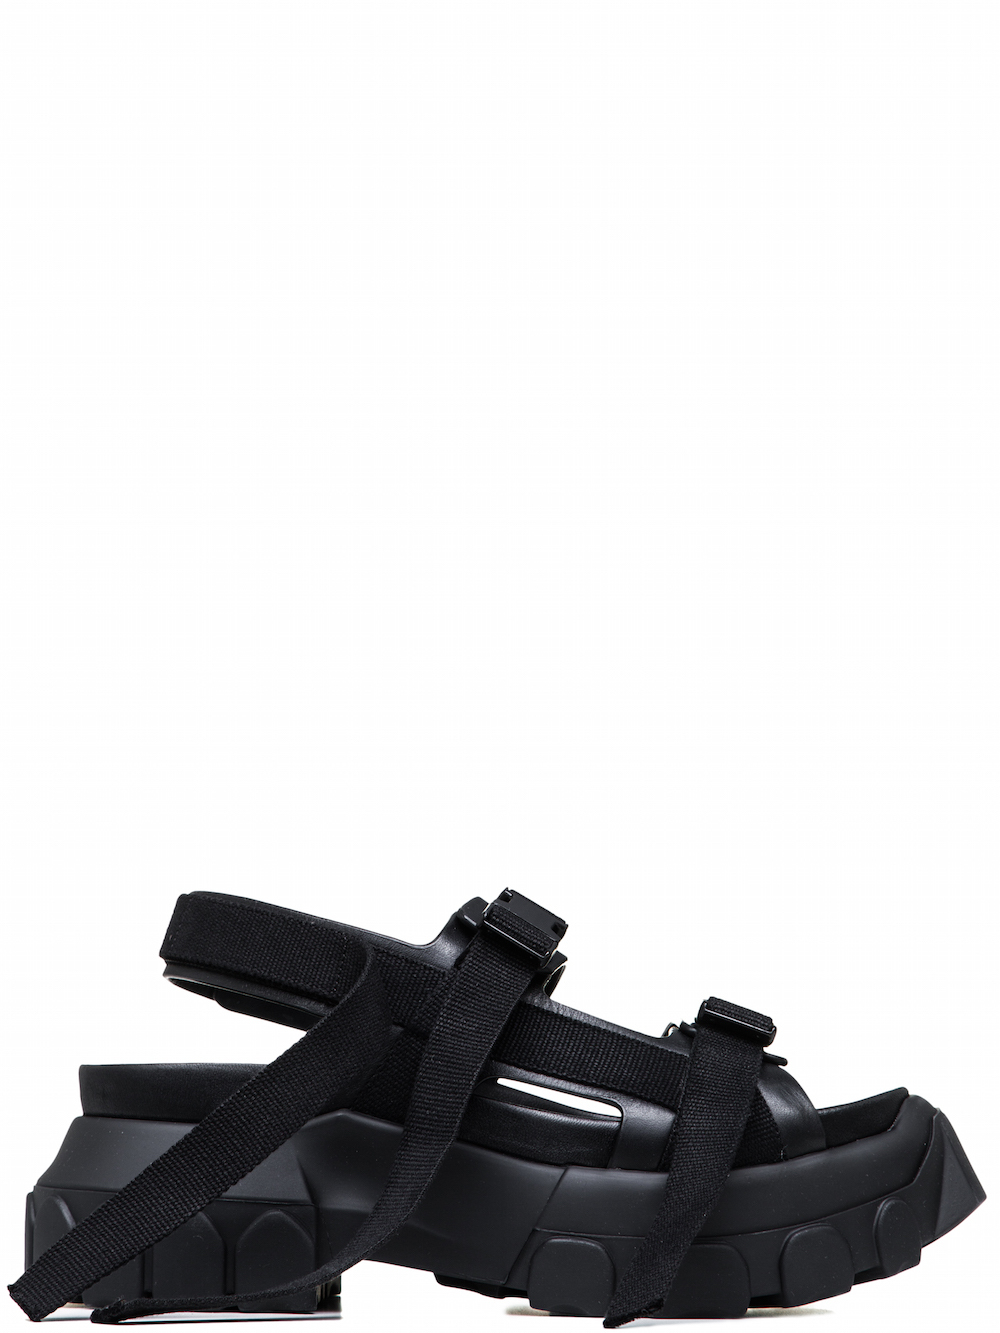 Rick Owens Hiking Sandals 3ogjE5mn